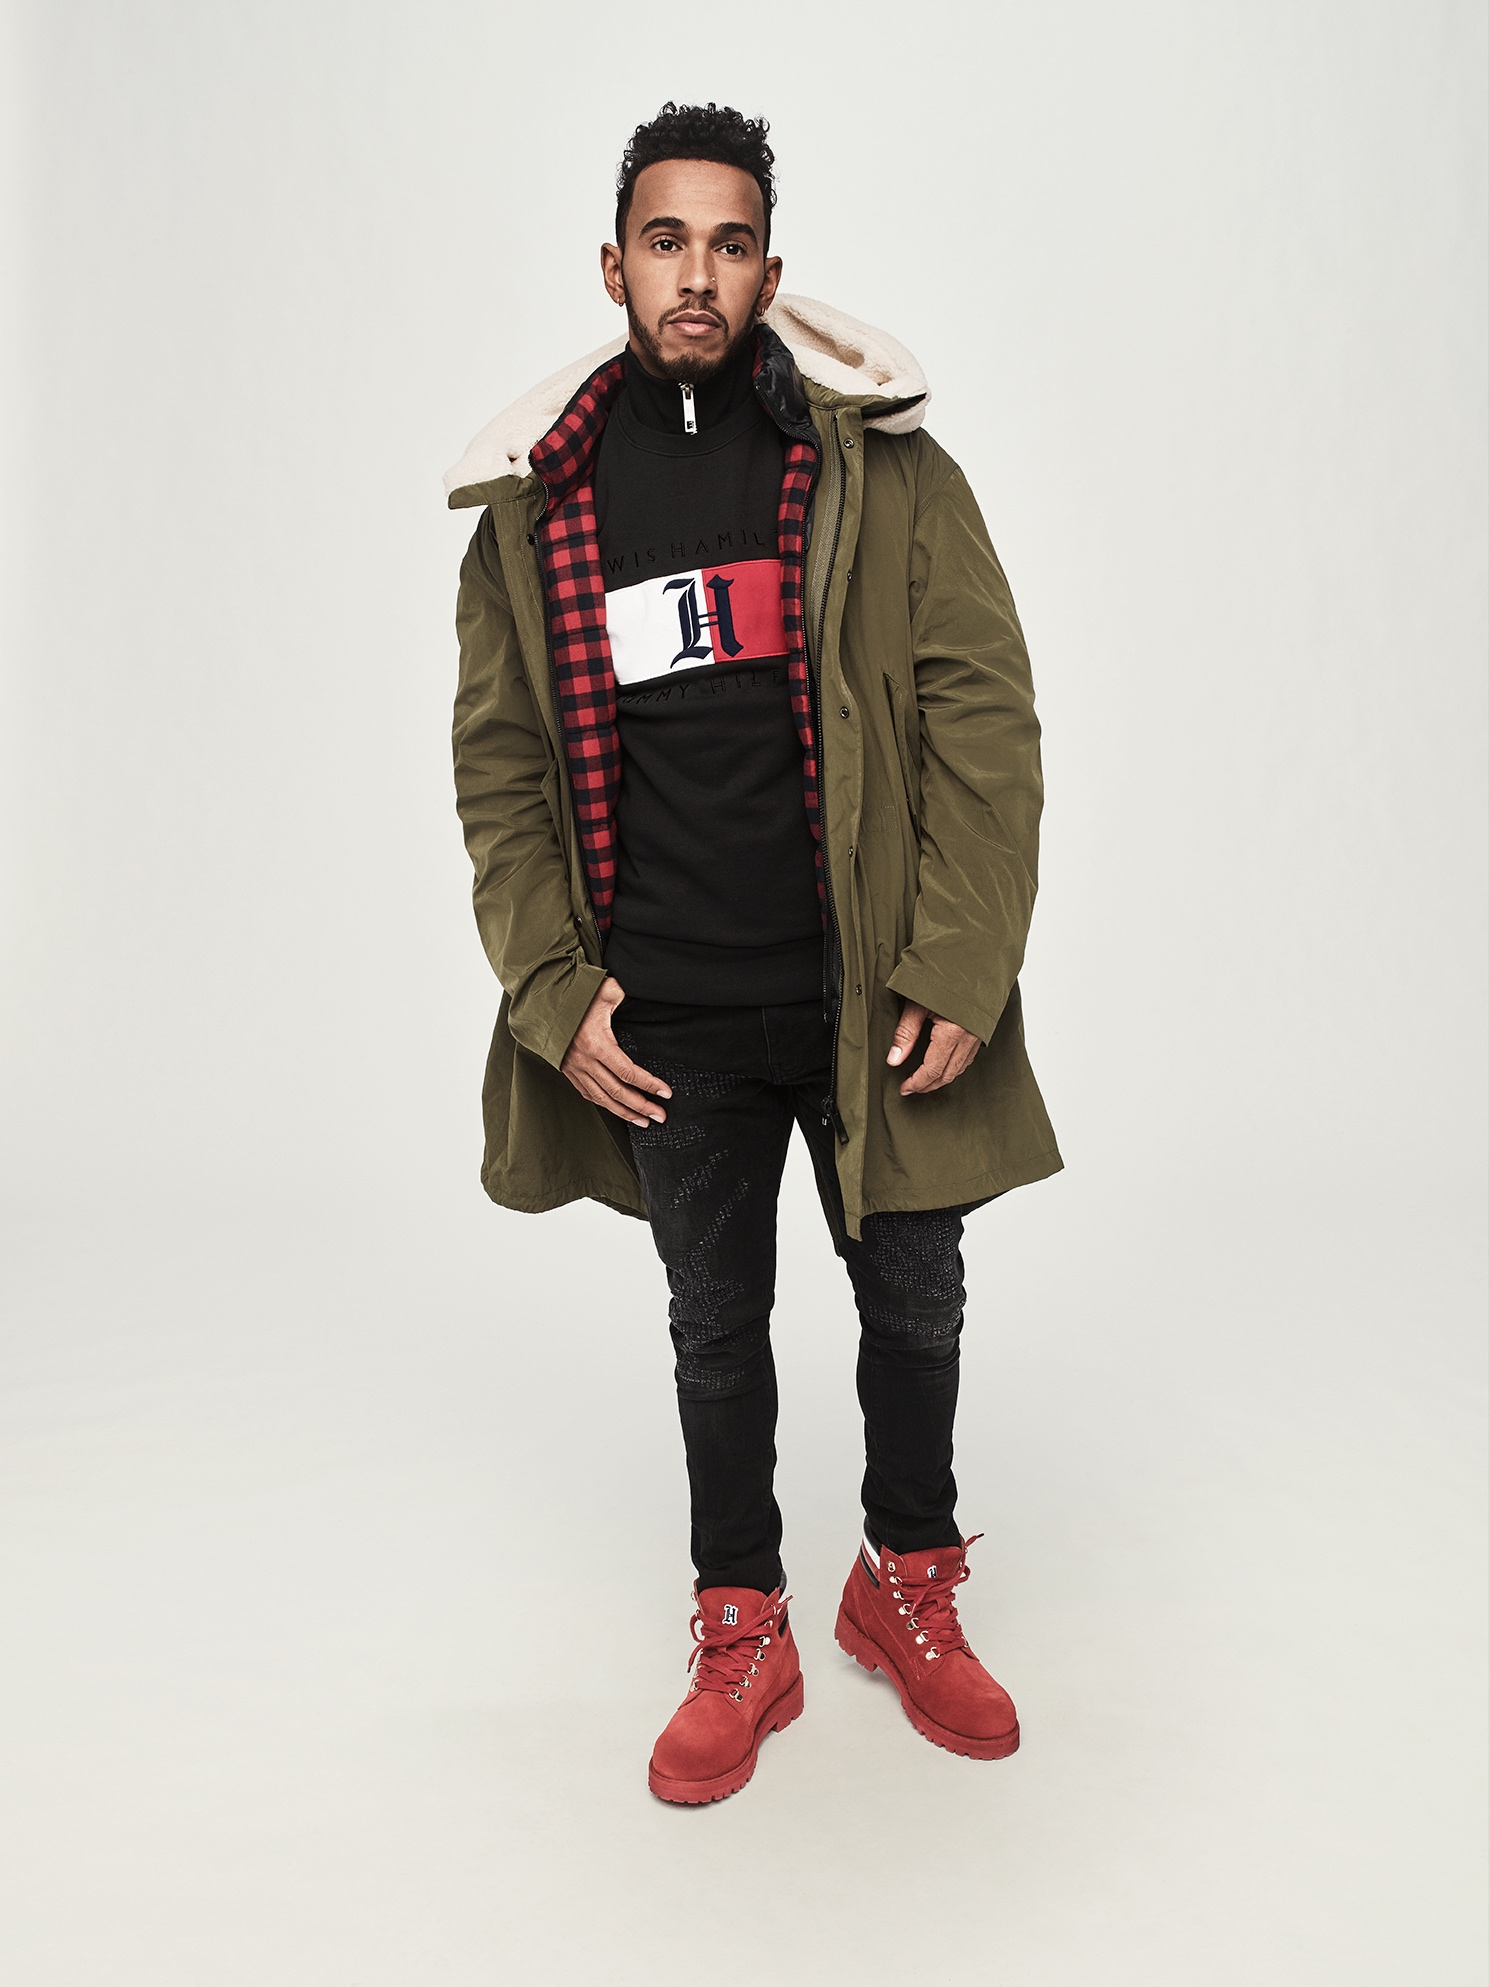 tommy hilfiger collaborates with lewis hamilton fashion